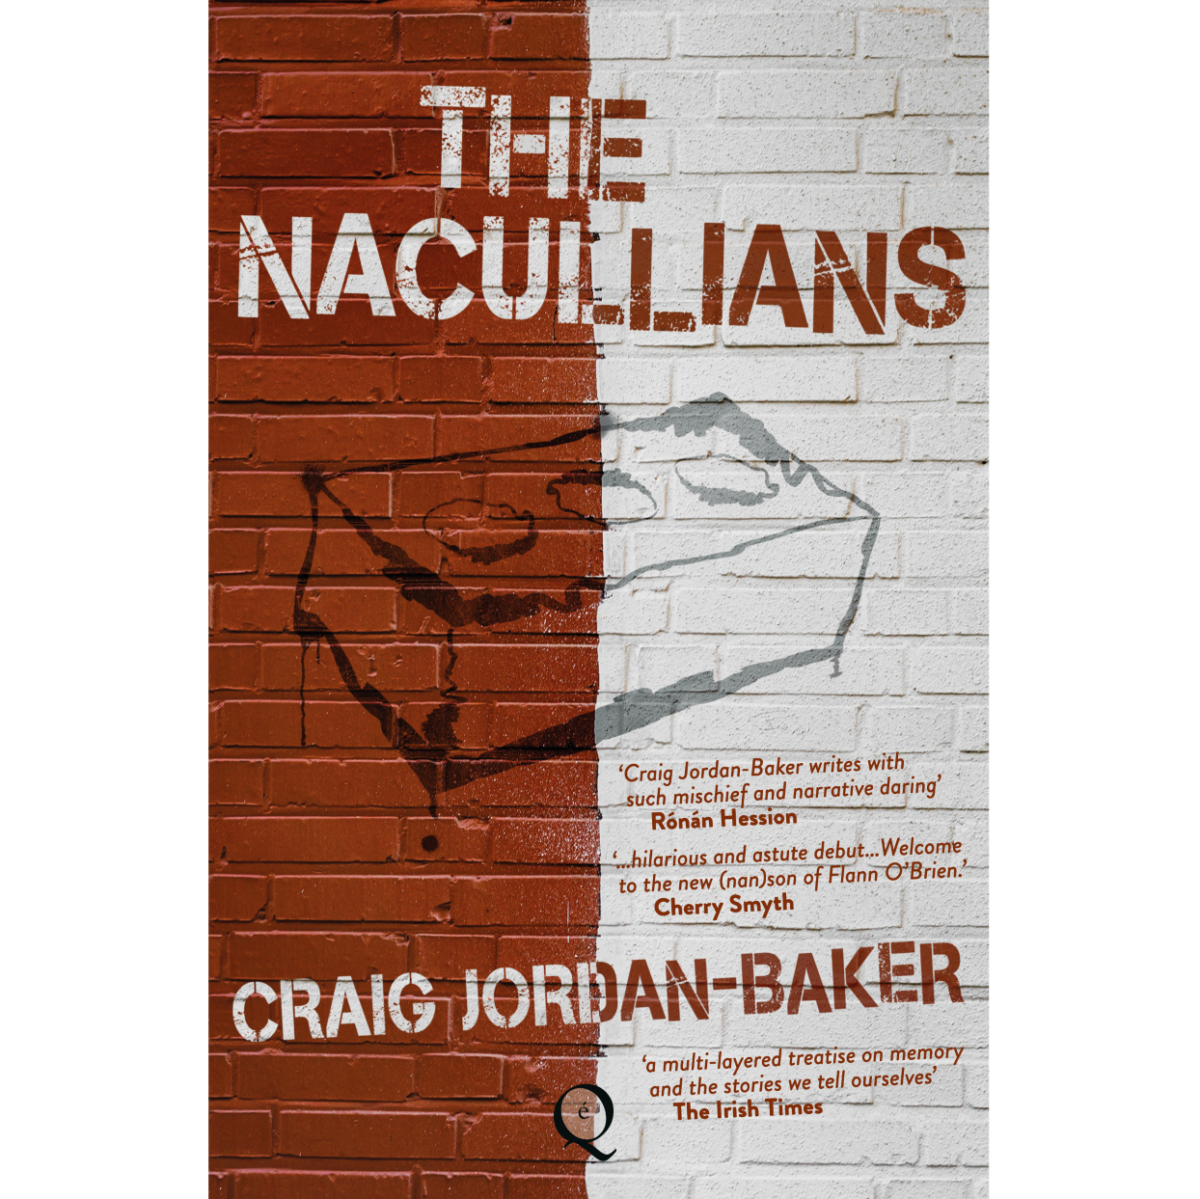 Book review: The Nacullians by Craig Jordan-Baker